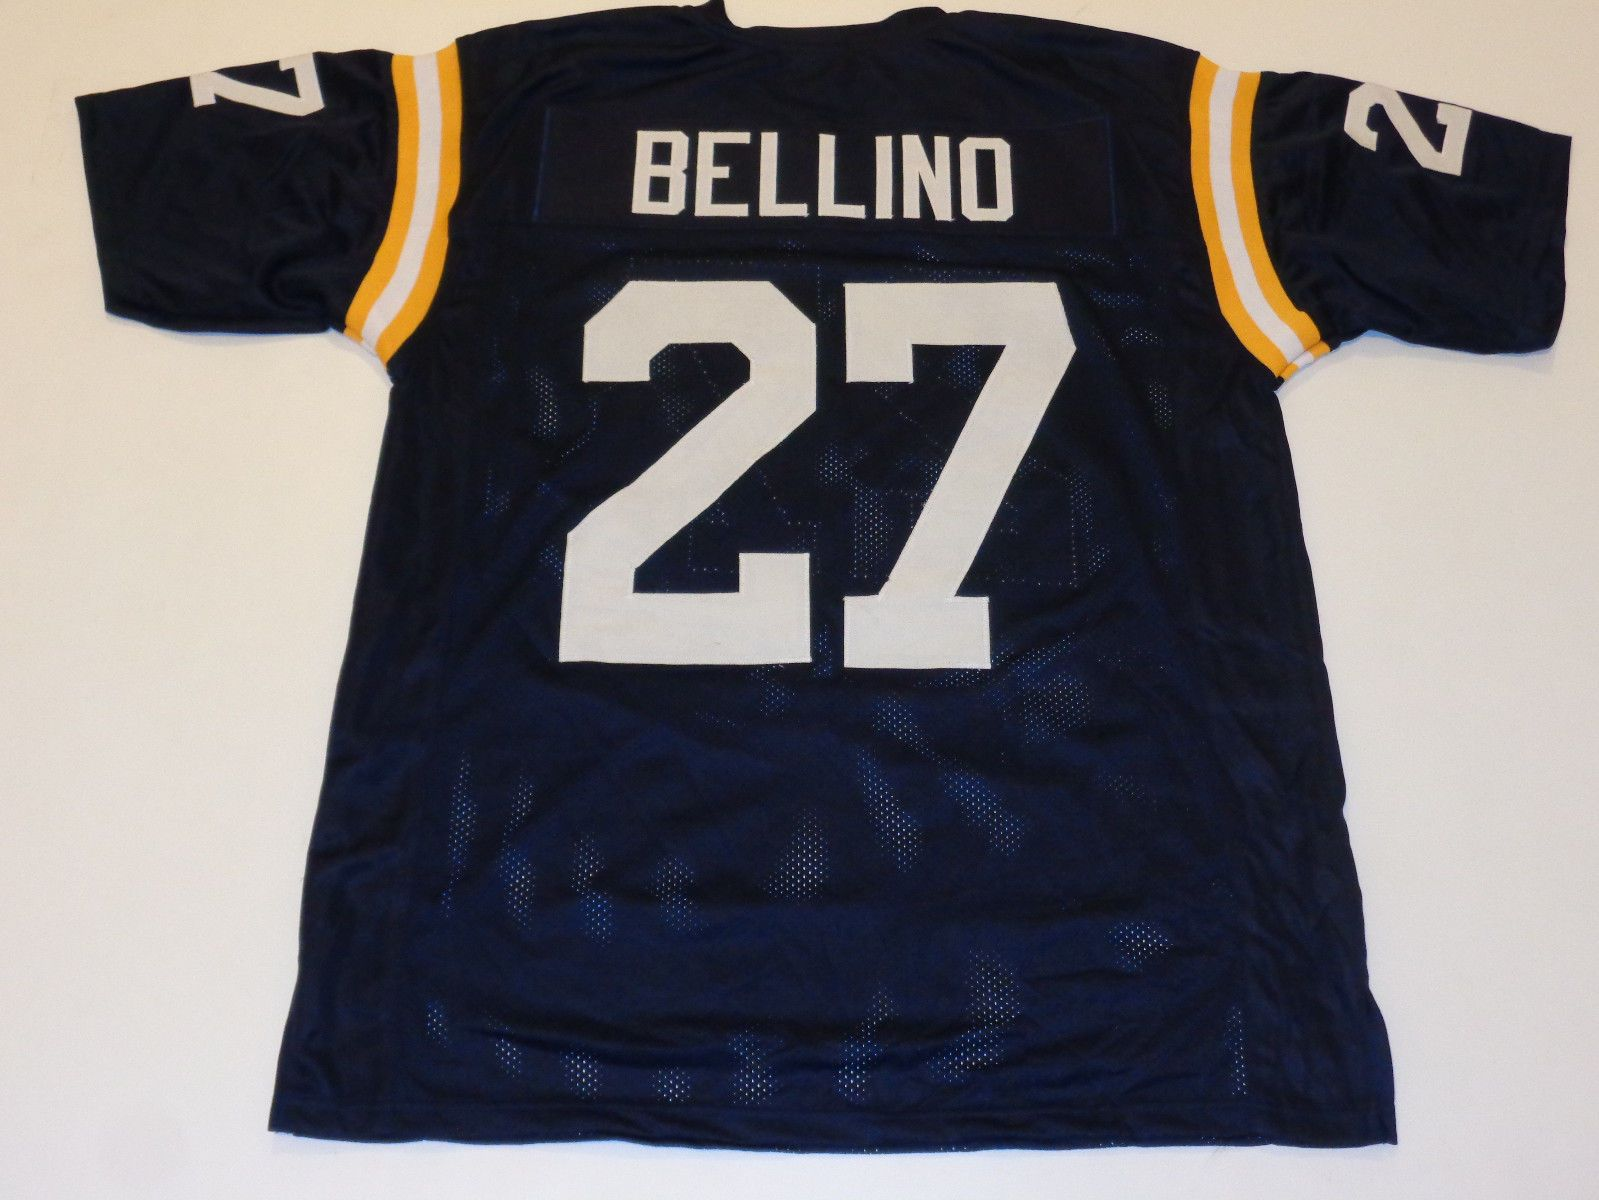 JOE BELLINO unsigned blue college style jersey adult mens XL